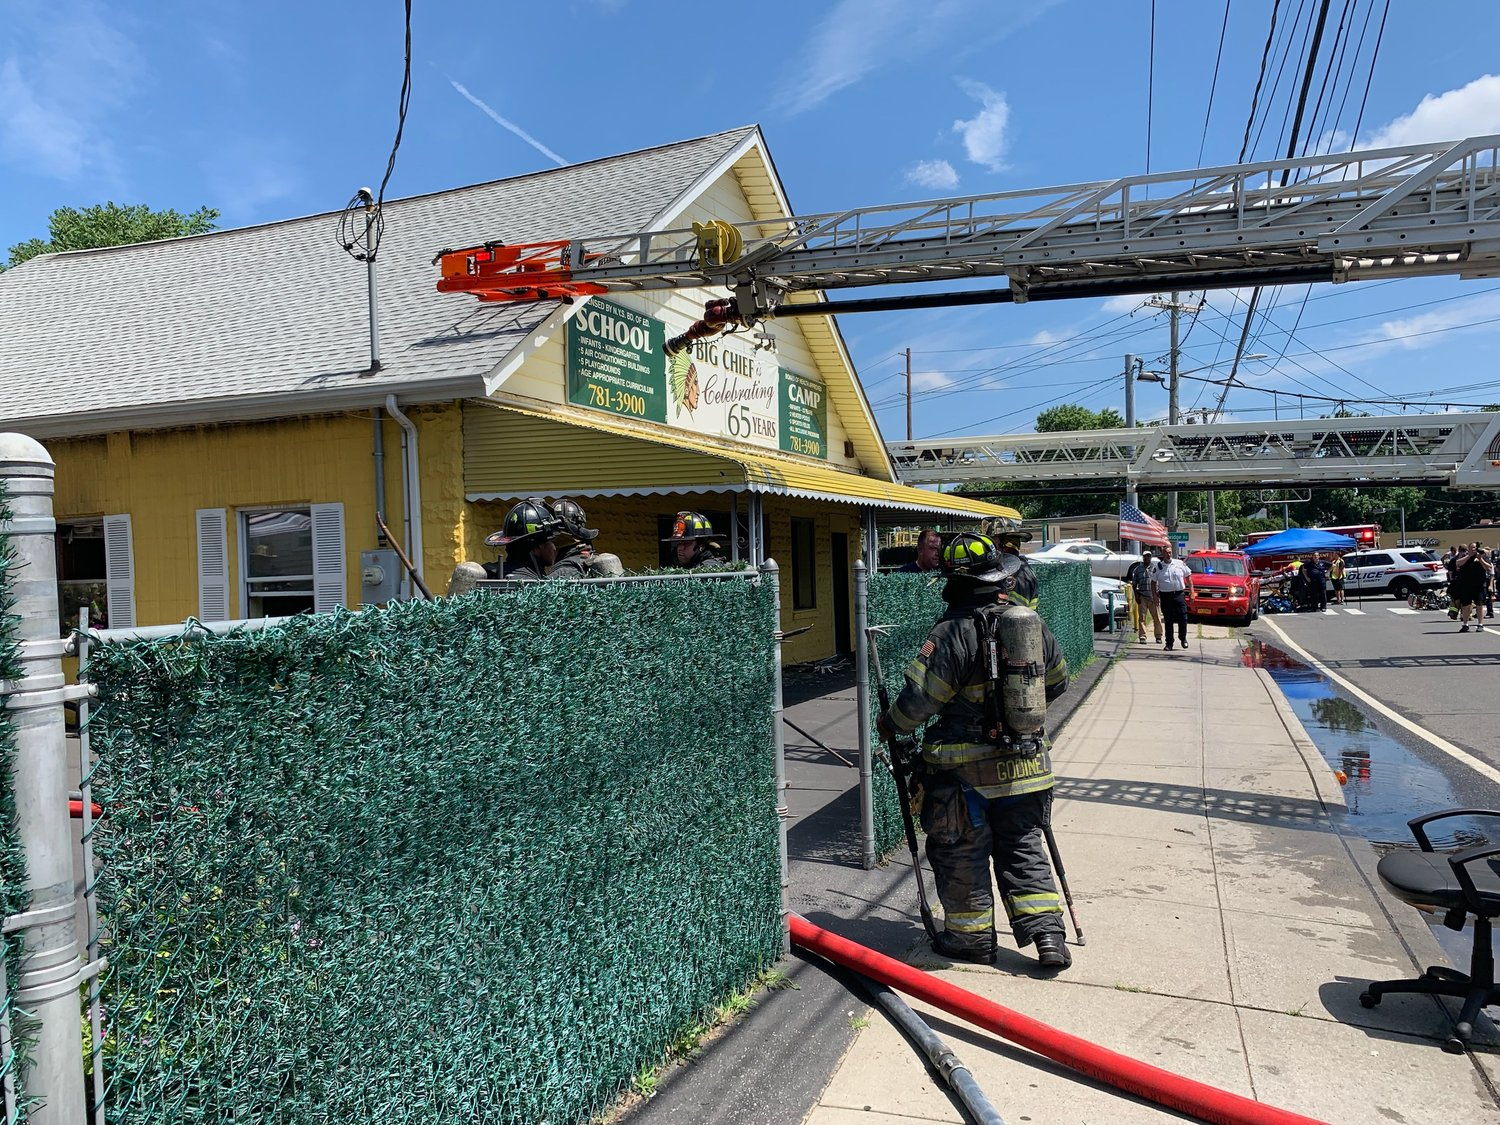 A three-alarm fire broke out at Big Chief Camp in East Meadow on July 24.